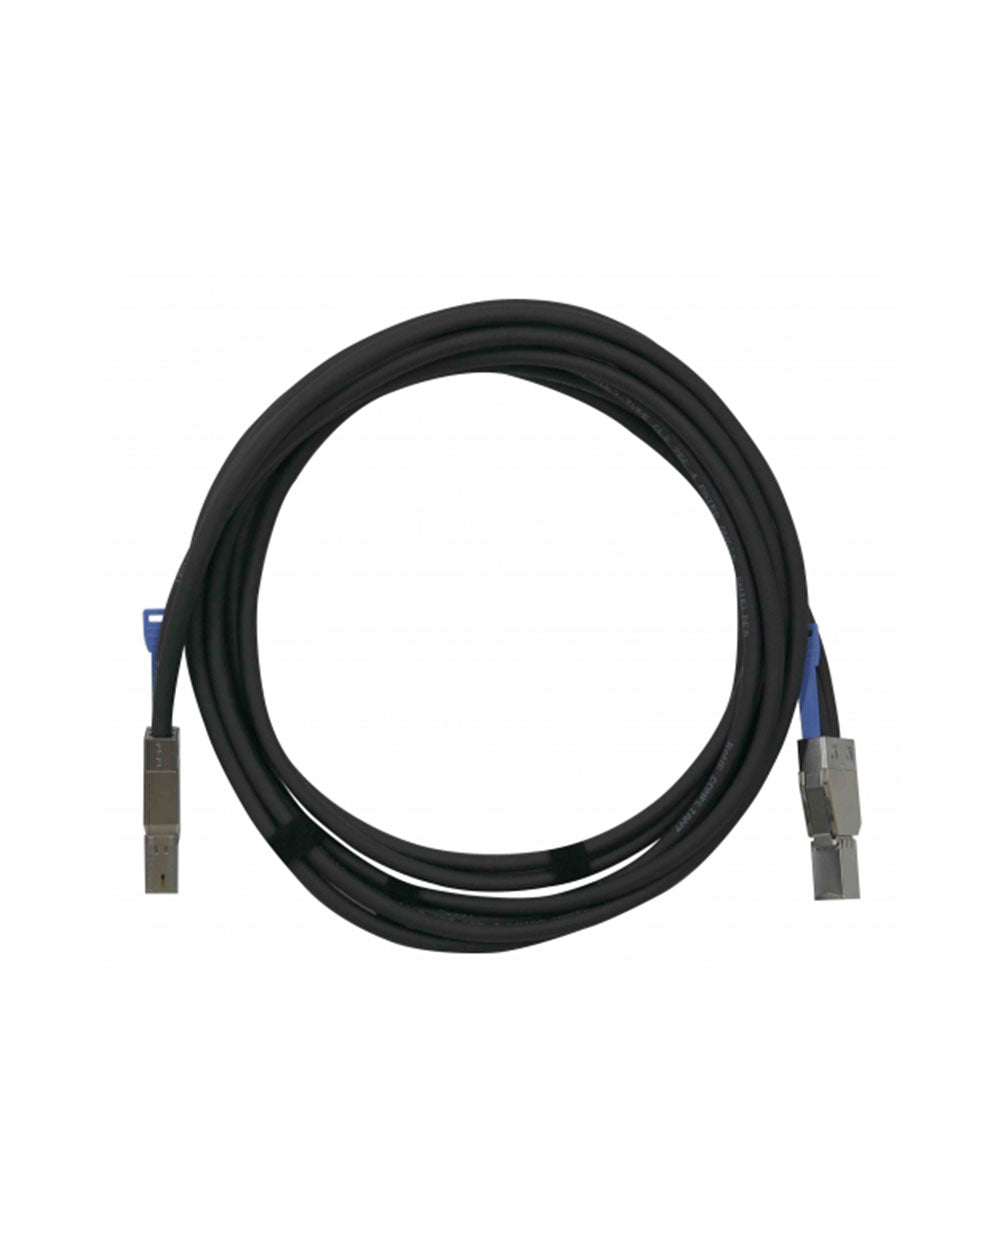 QNAP mini SAS cable (2.0M, SFF-8644)